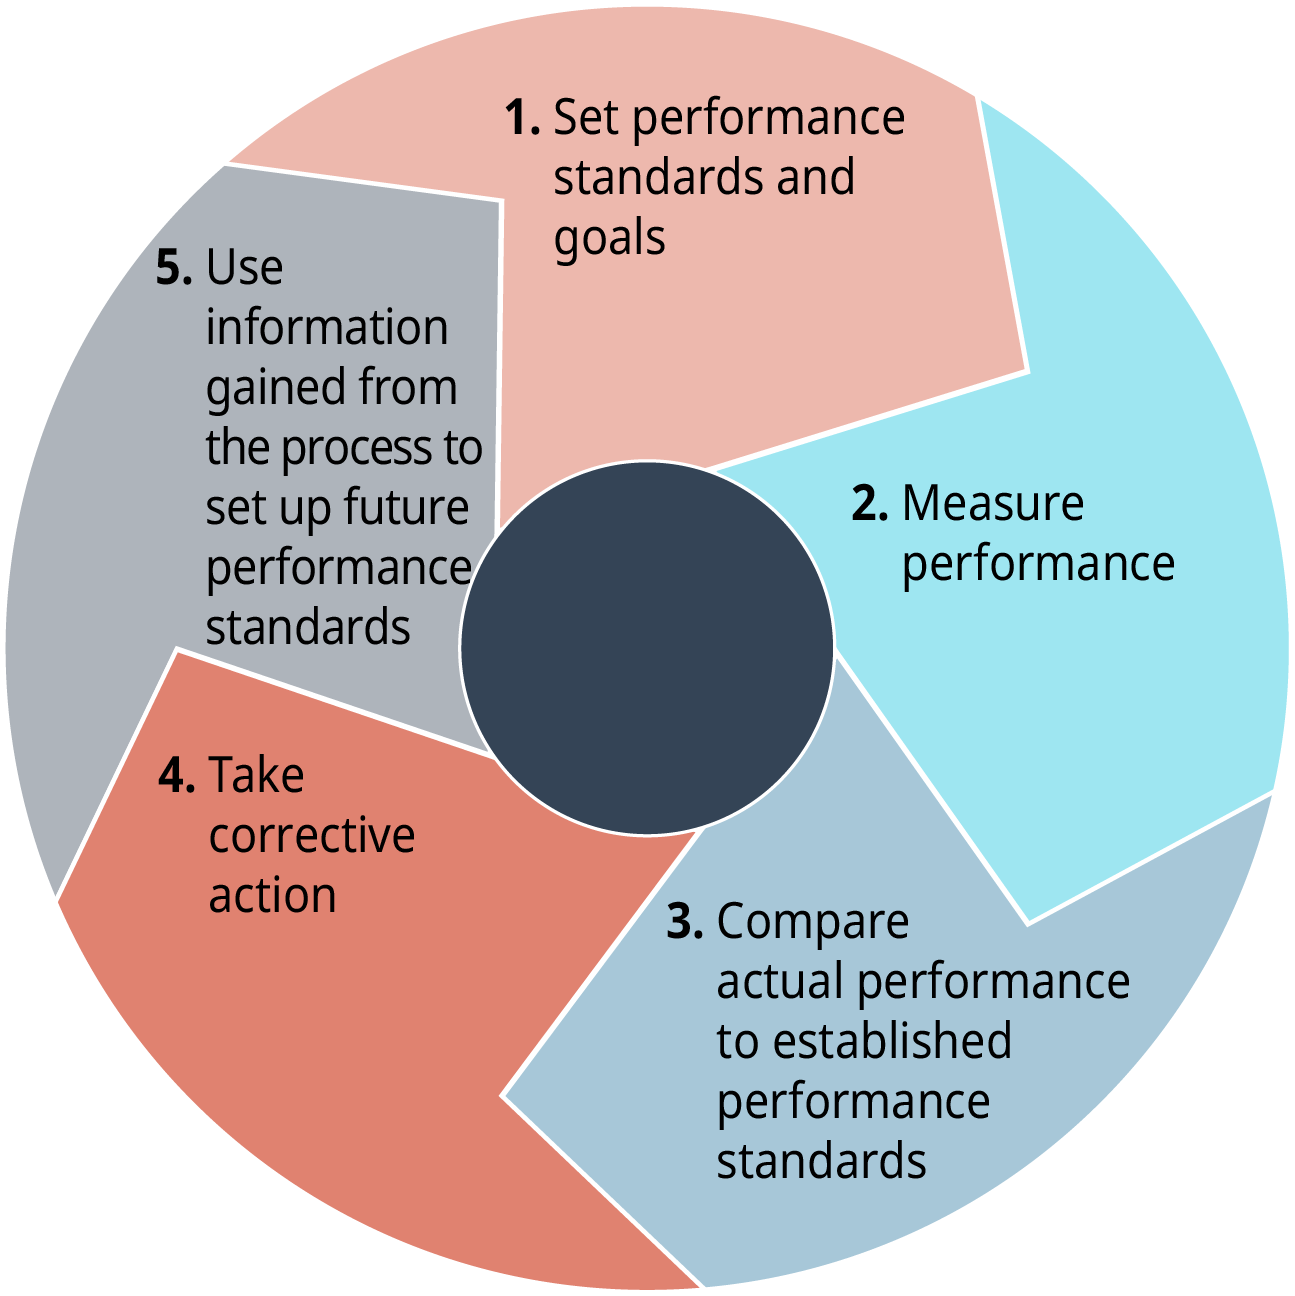 The Control Process is a cyclical process made up of five stages. Stage 1: Set performance standards and goals. Stage 2: Measure performance. Stage 3: Compare actual performance to established performance standards. Stage 4: Take corrective action. Stage 5: Use information gained from the process to set up future performance standards.